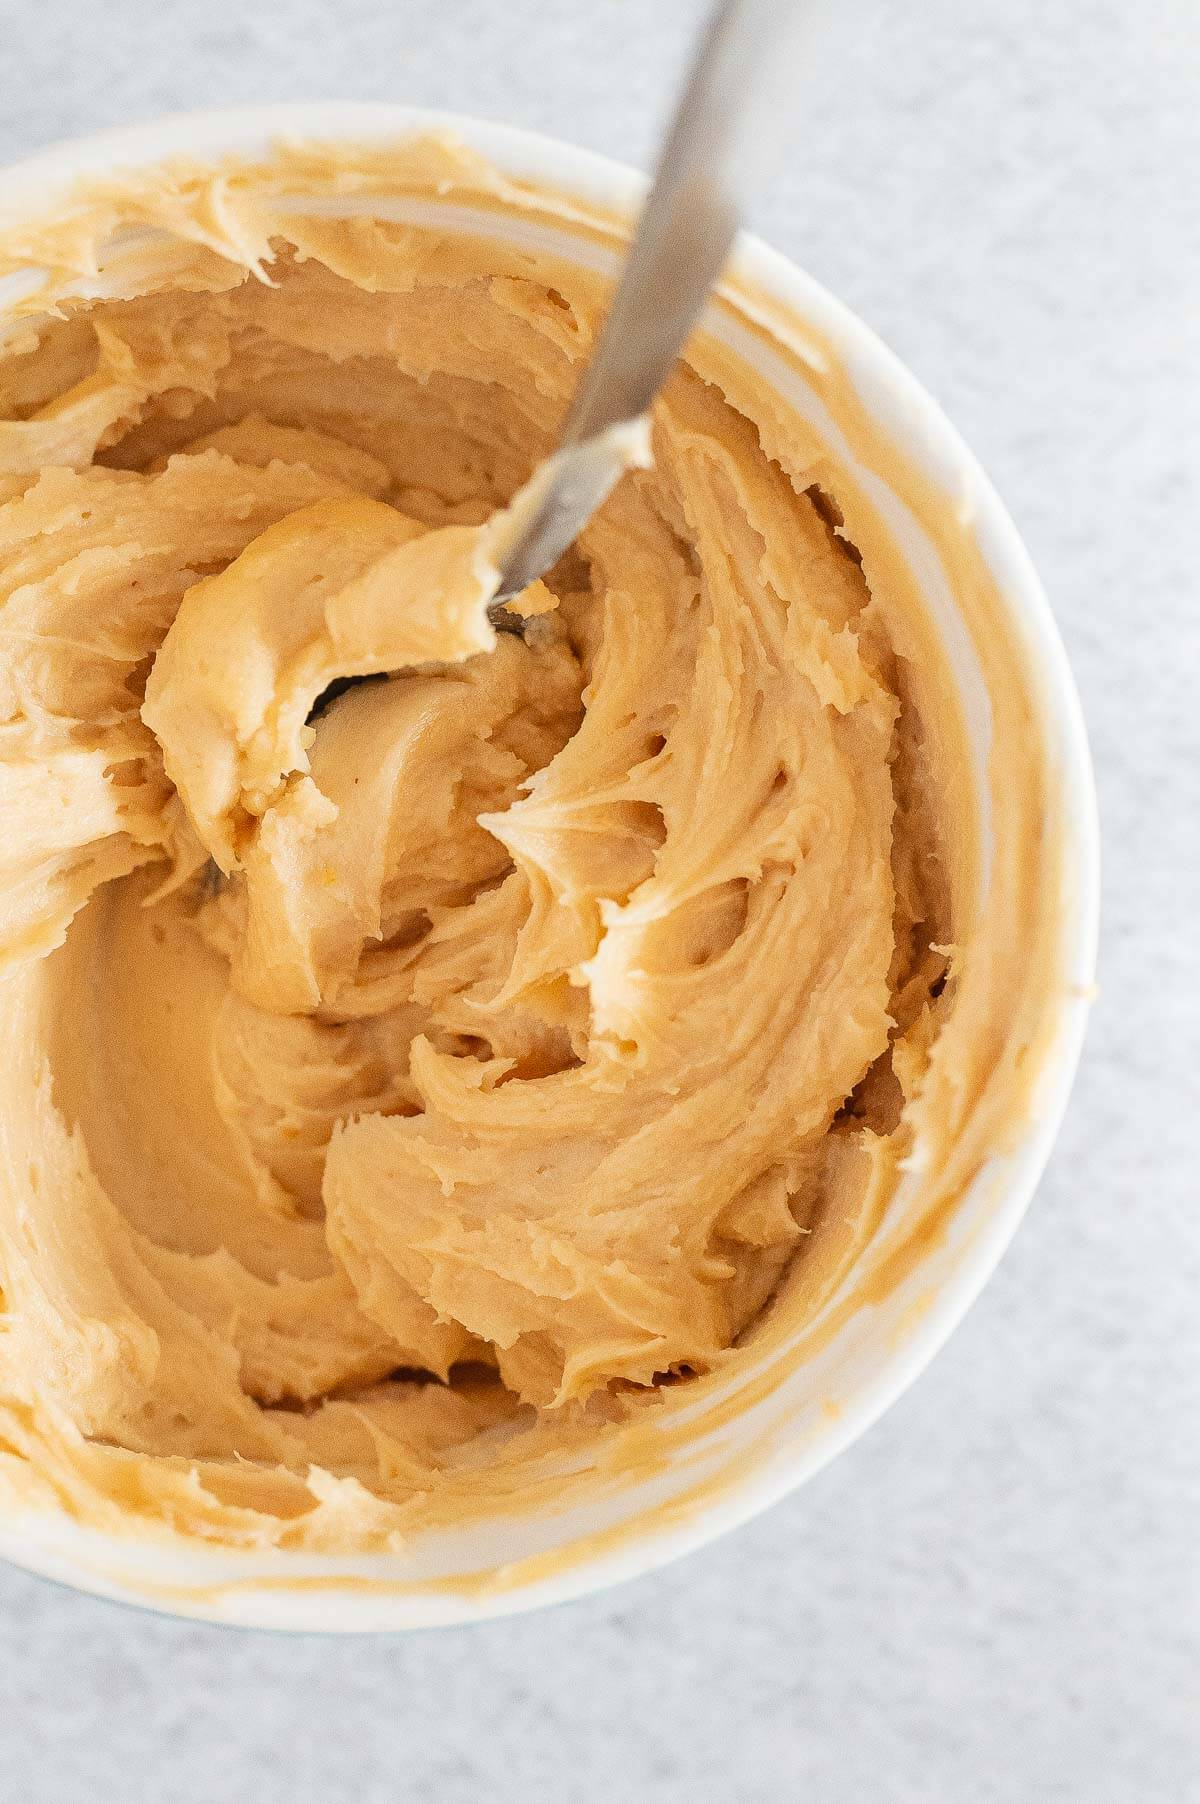 peanut butter cream cheese filling in a bowl